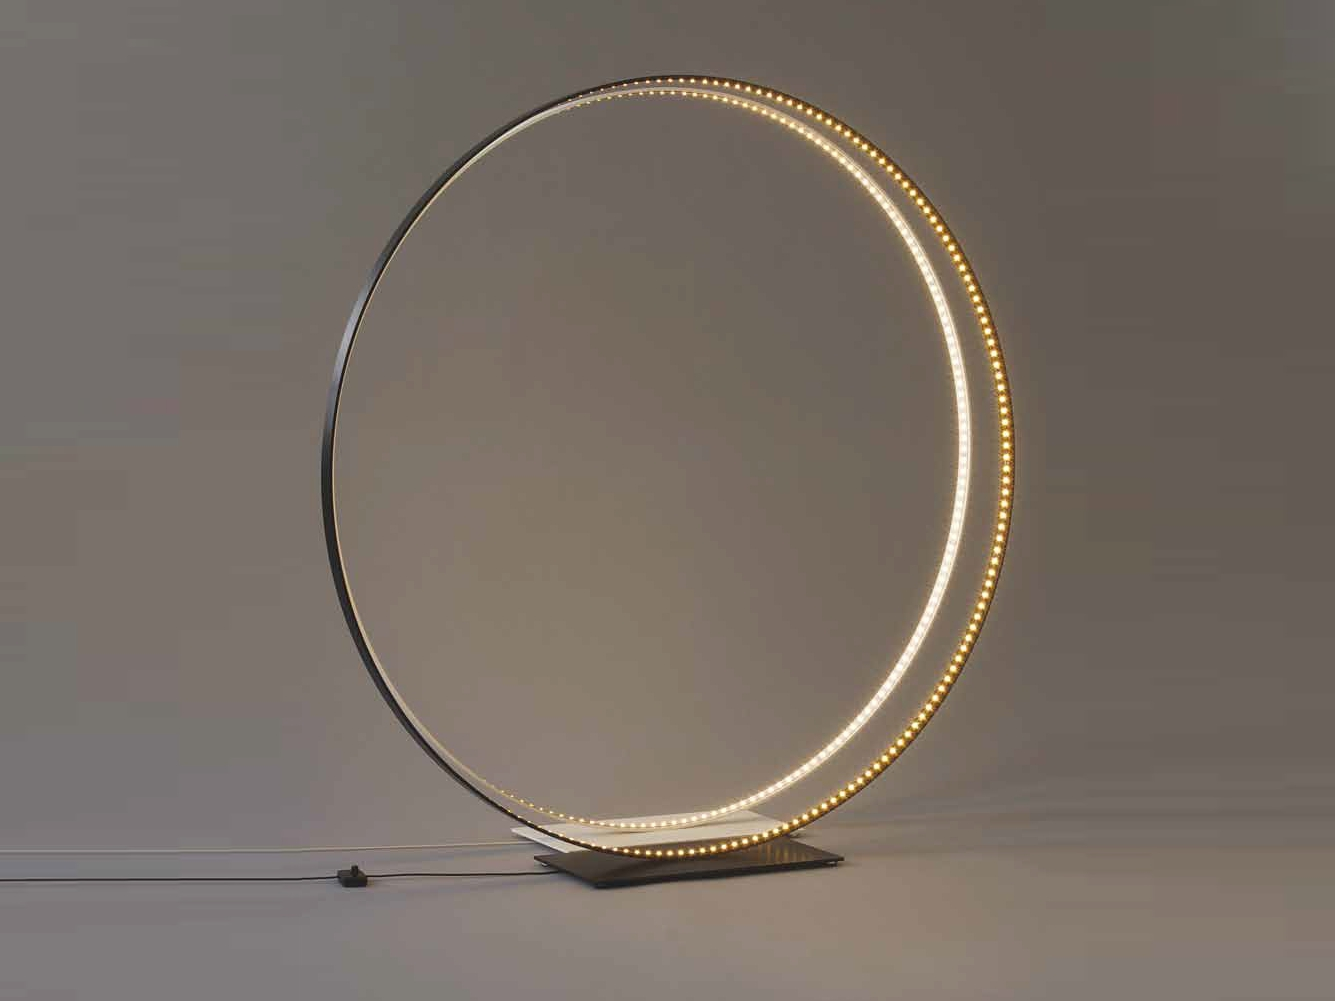 Led direct indirect light table lamp mega by le deun for Lampe de chevet moderne